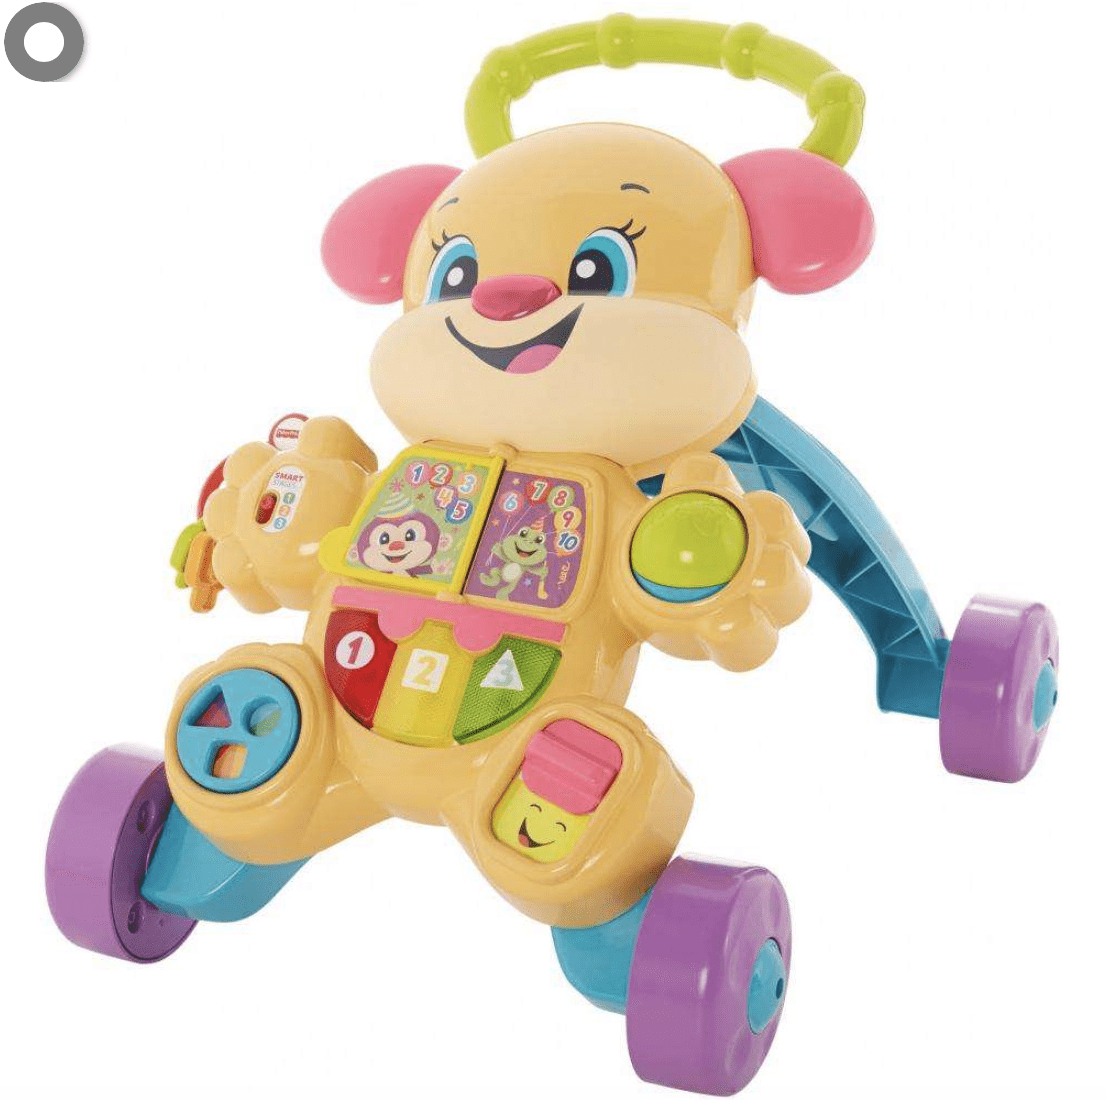 Walmart: Up to 75% off Toy Sale